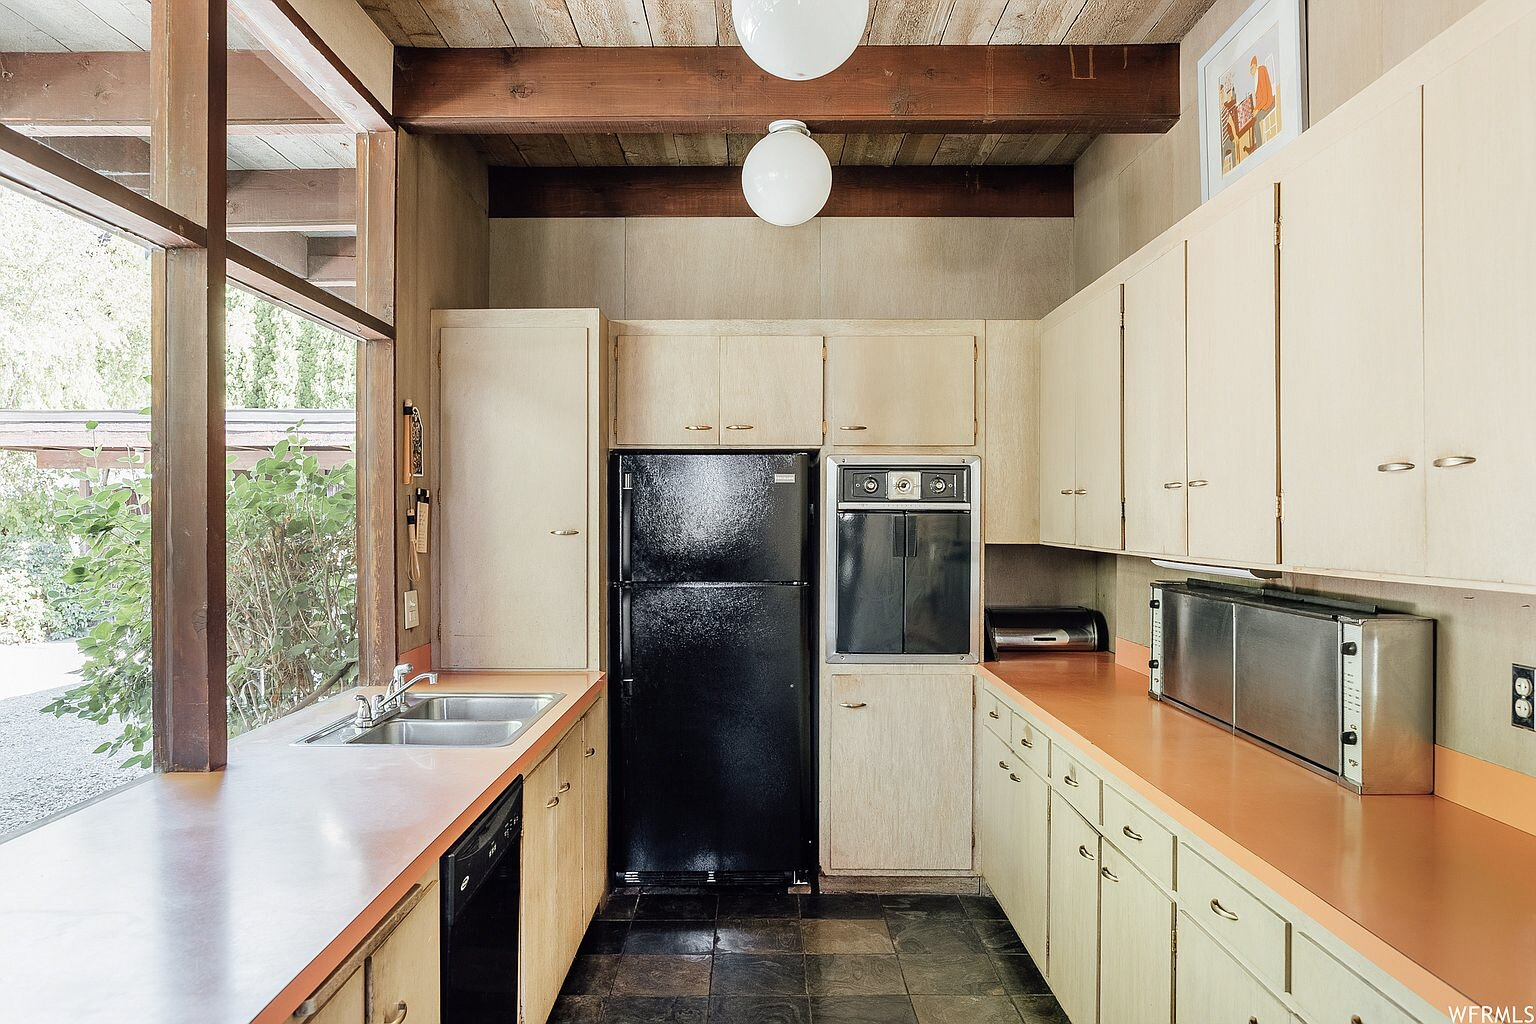 Around the corner from the dining area, the nearly original kitchen features several large windows overlooking the front yard. The space is filled with mix of new and vintage appliances, as well as the original cabinetry and countertops.  Photo 6 of 18 in This Tranquil, Japanese-Inspired Midcentury Home Asks $1.2M